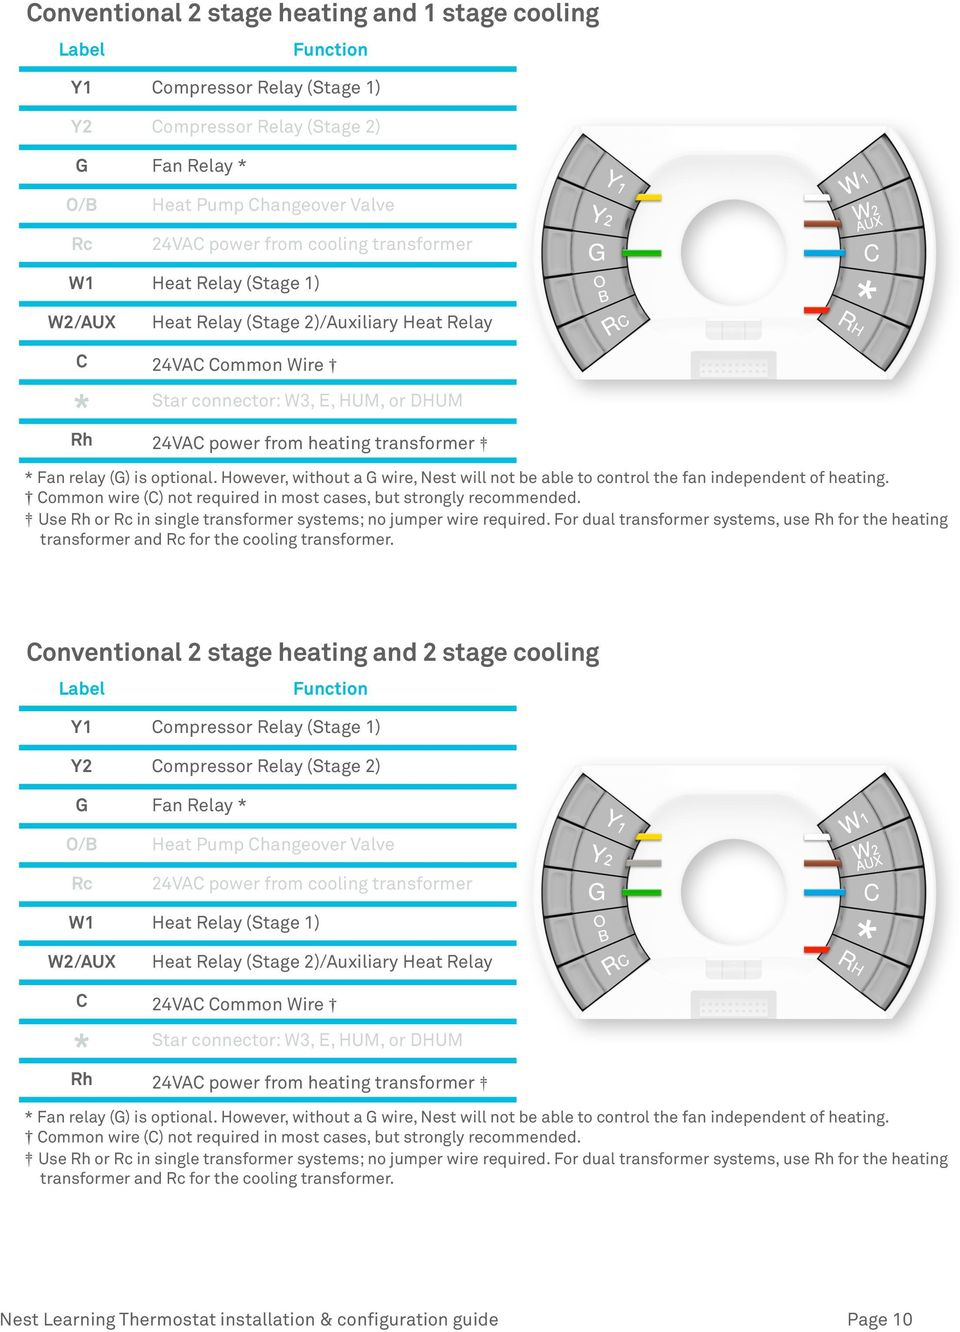 Nest Learning Thermostat Pro Installation & Configuration Guide - Pdf - Nest 3Rd Generation Wiring Diagram Fan Control